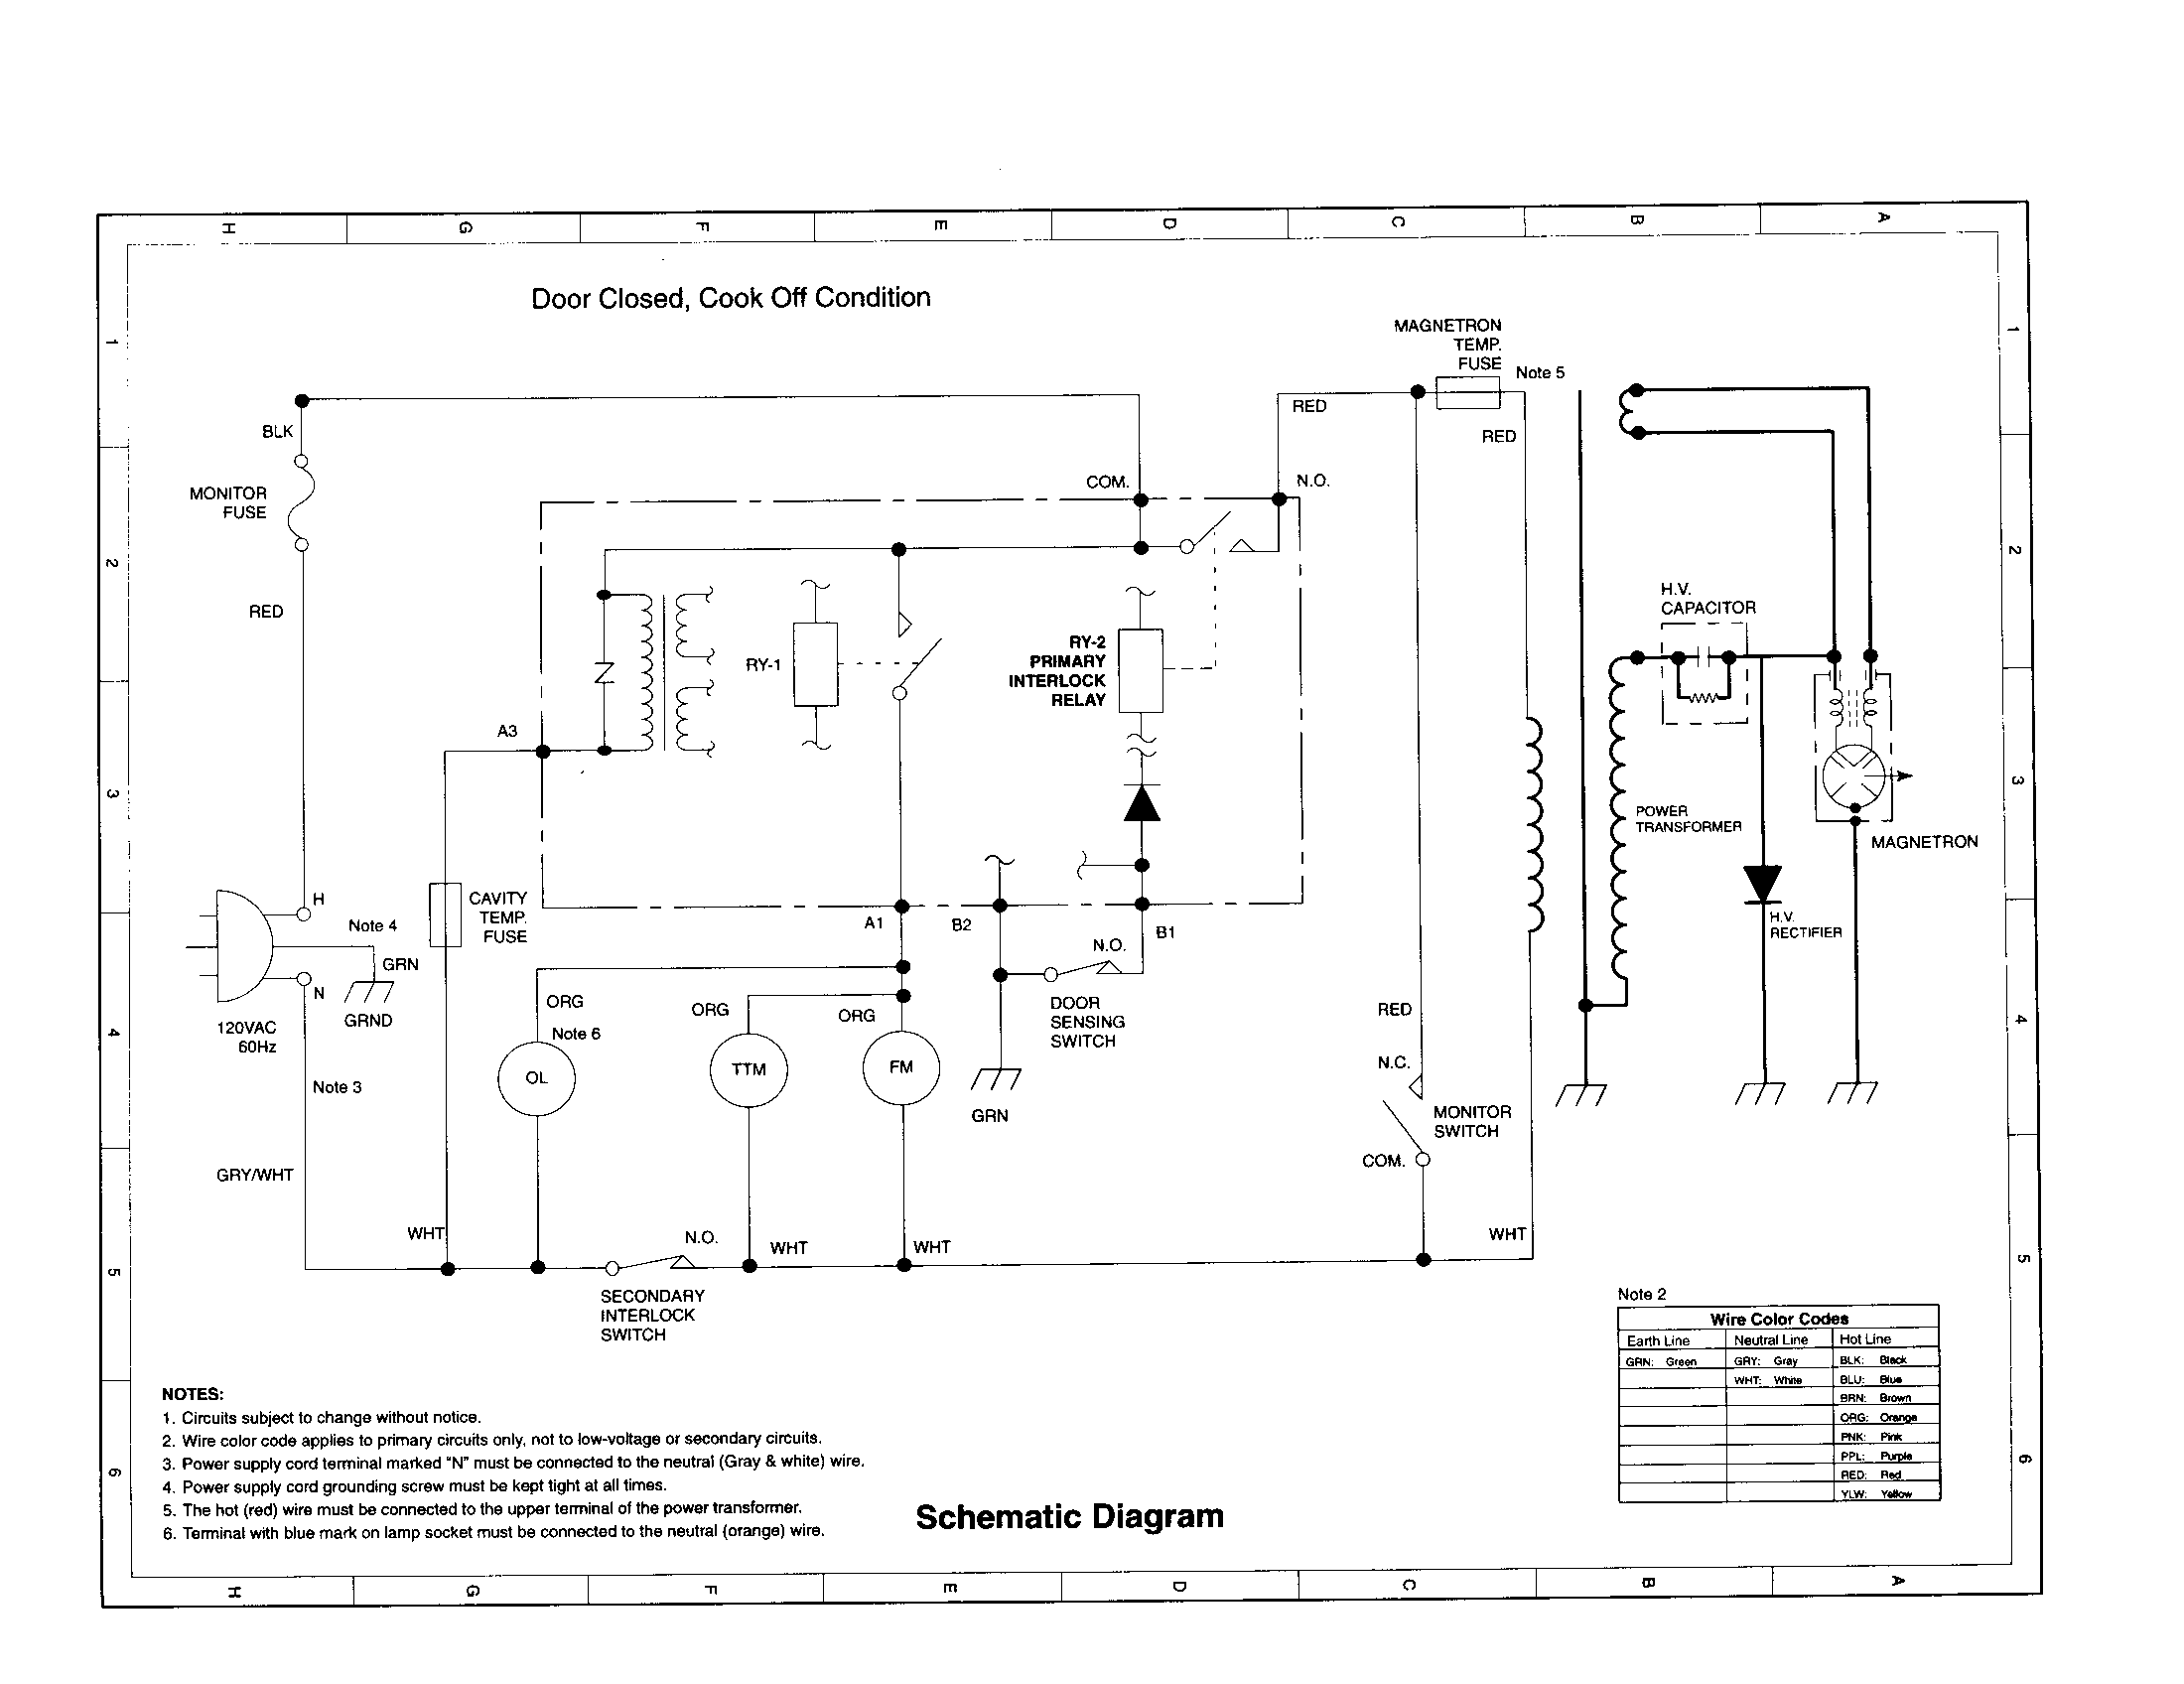 Schematic Diagrams Switch Wiring